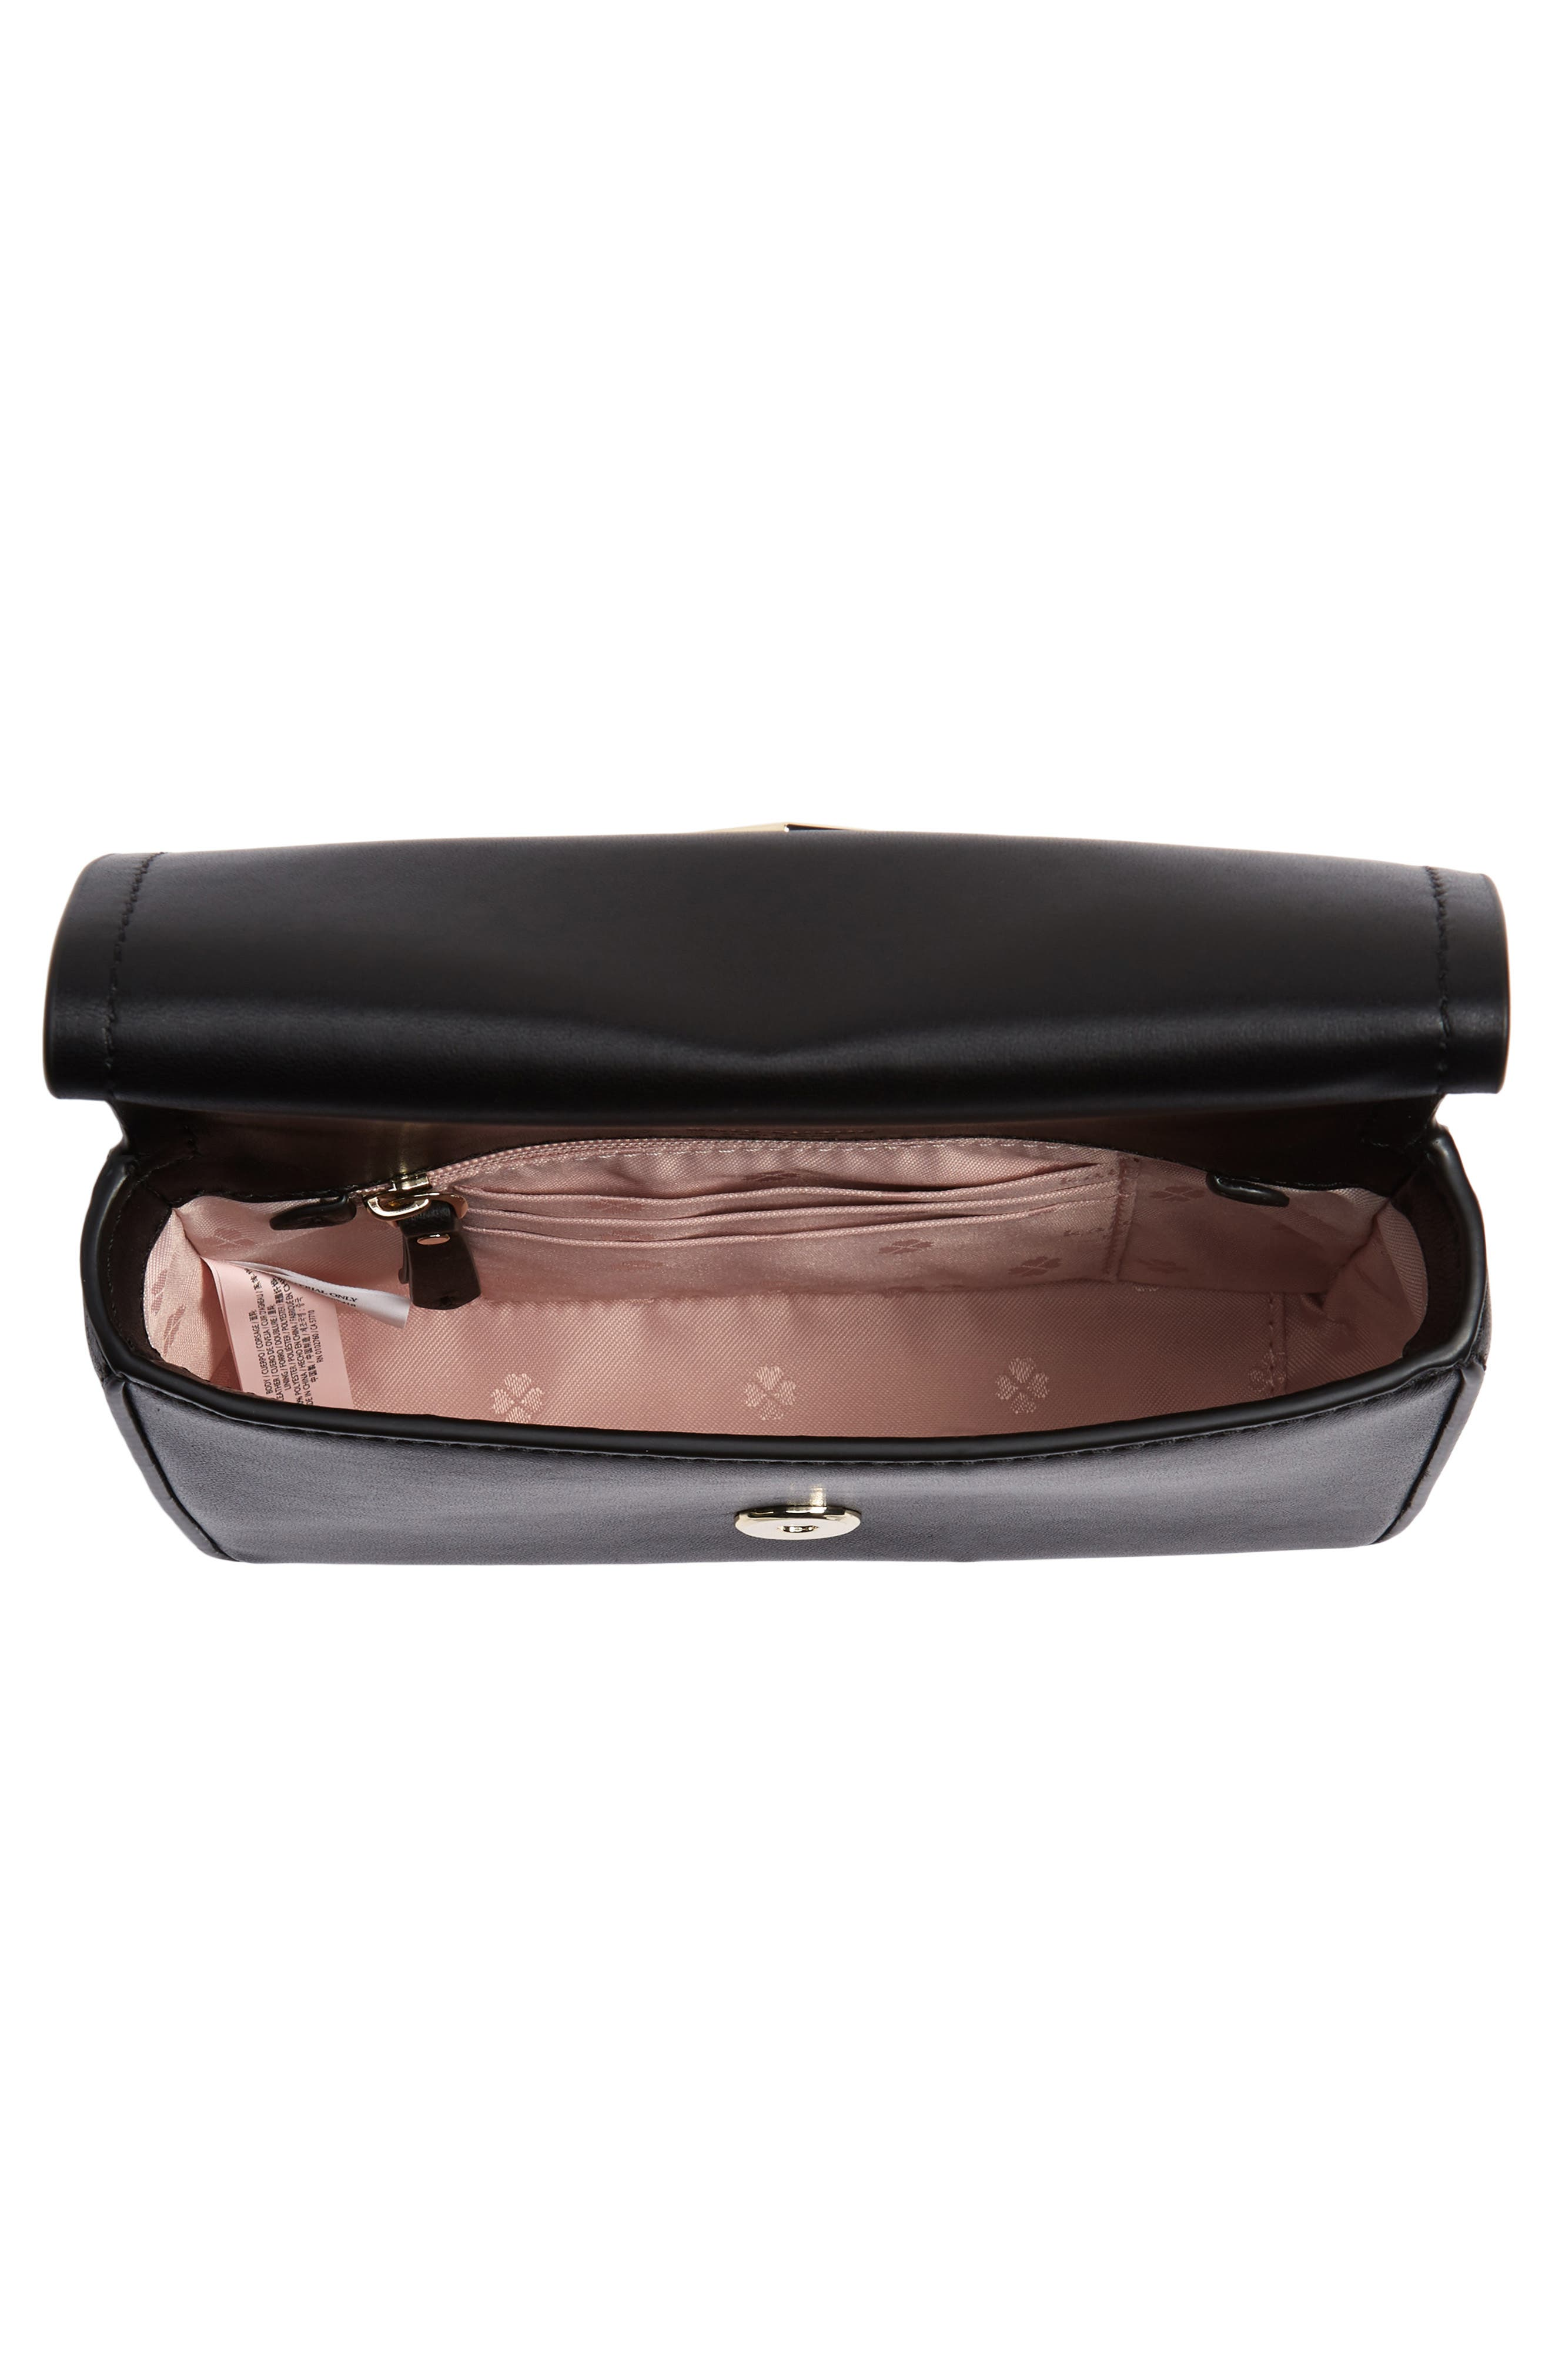 KATE SPADE NEW YORK, small amelia leather shoulder bag, Alternate thumbnail 5, color, BLACK